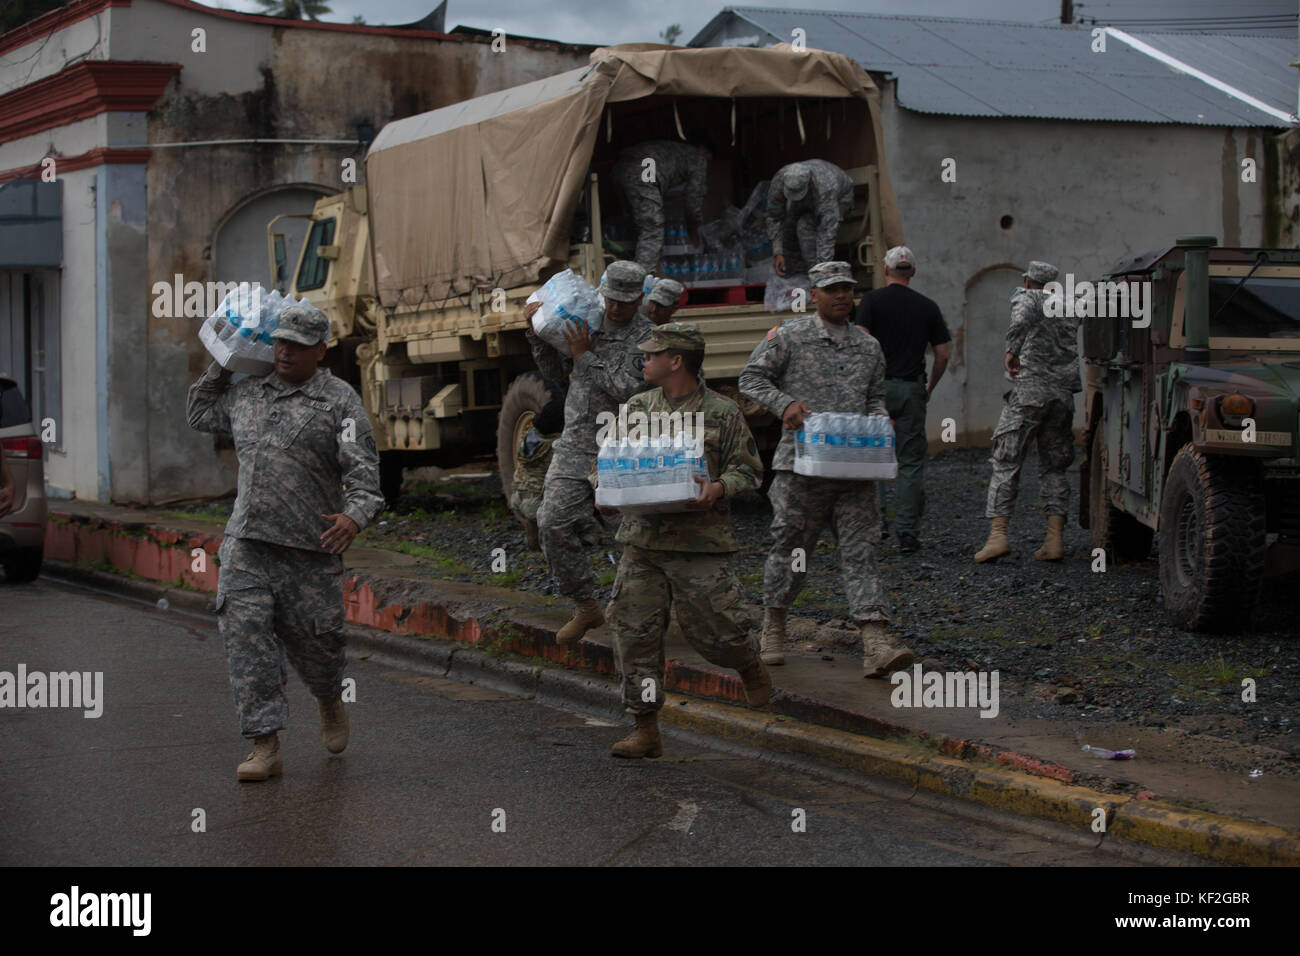 U.S. Army soldiers deliver emergency supplies to Puerto Rican residents in the aftermath of Hurricane Maria October - Stock Image